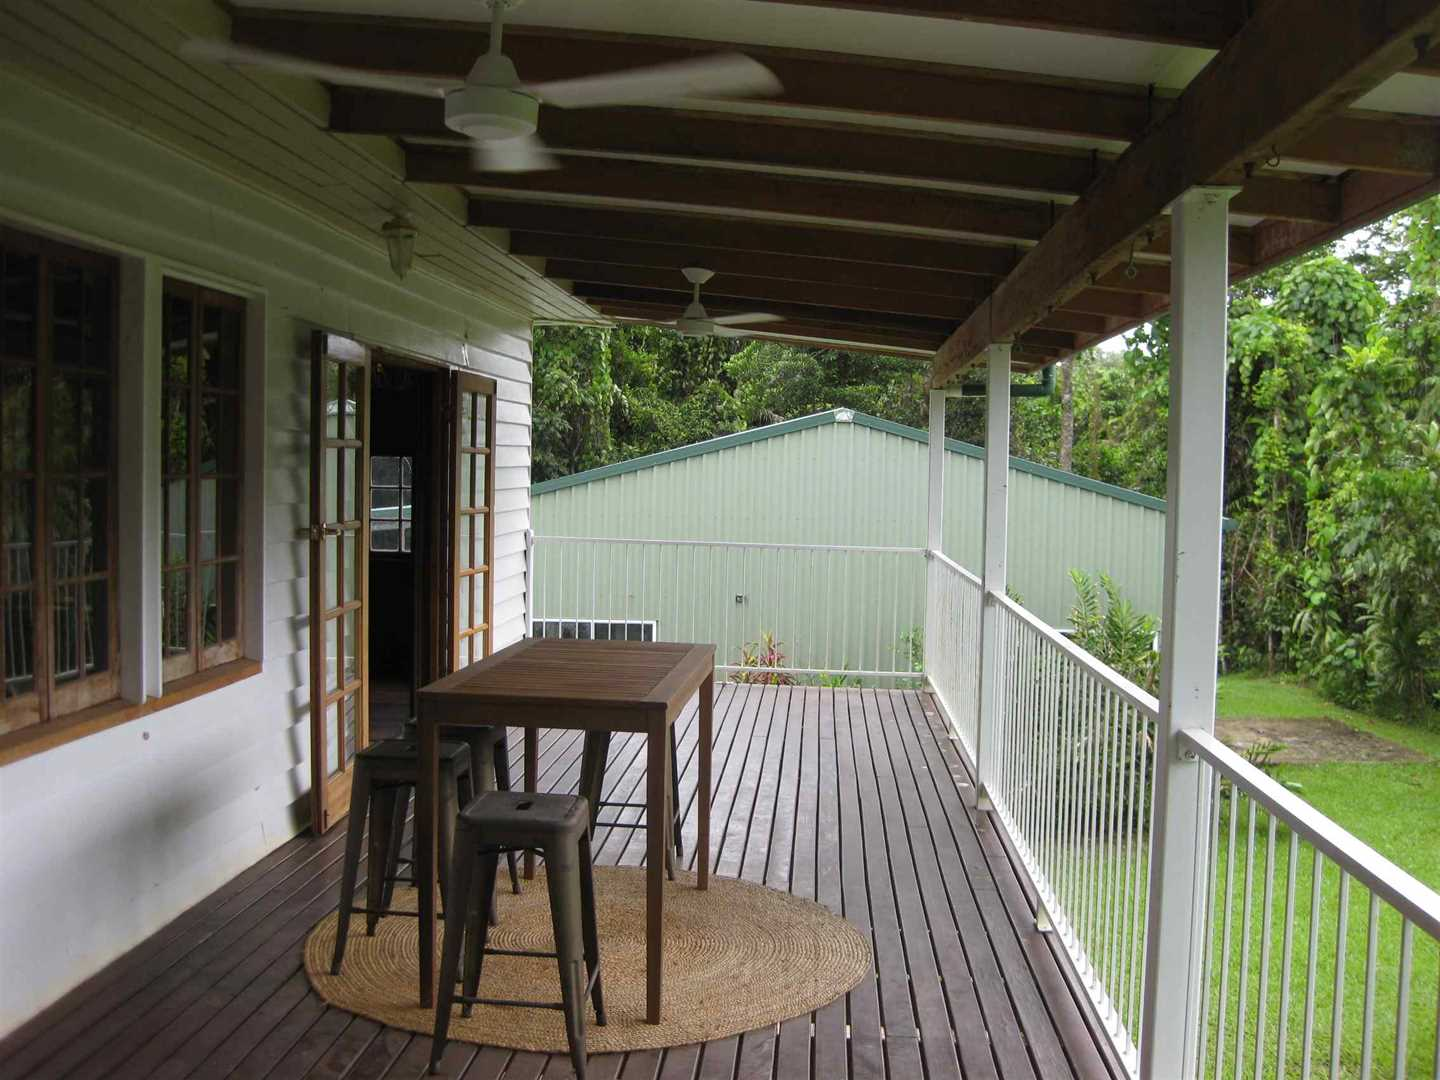 View of part of home verandah, photo 2